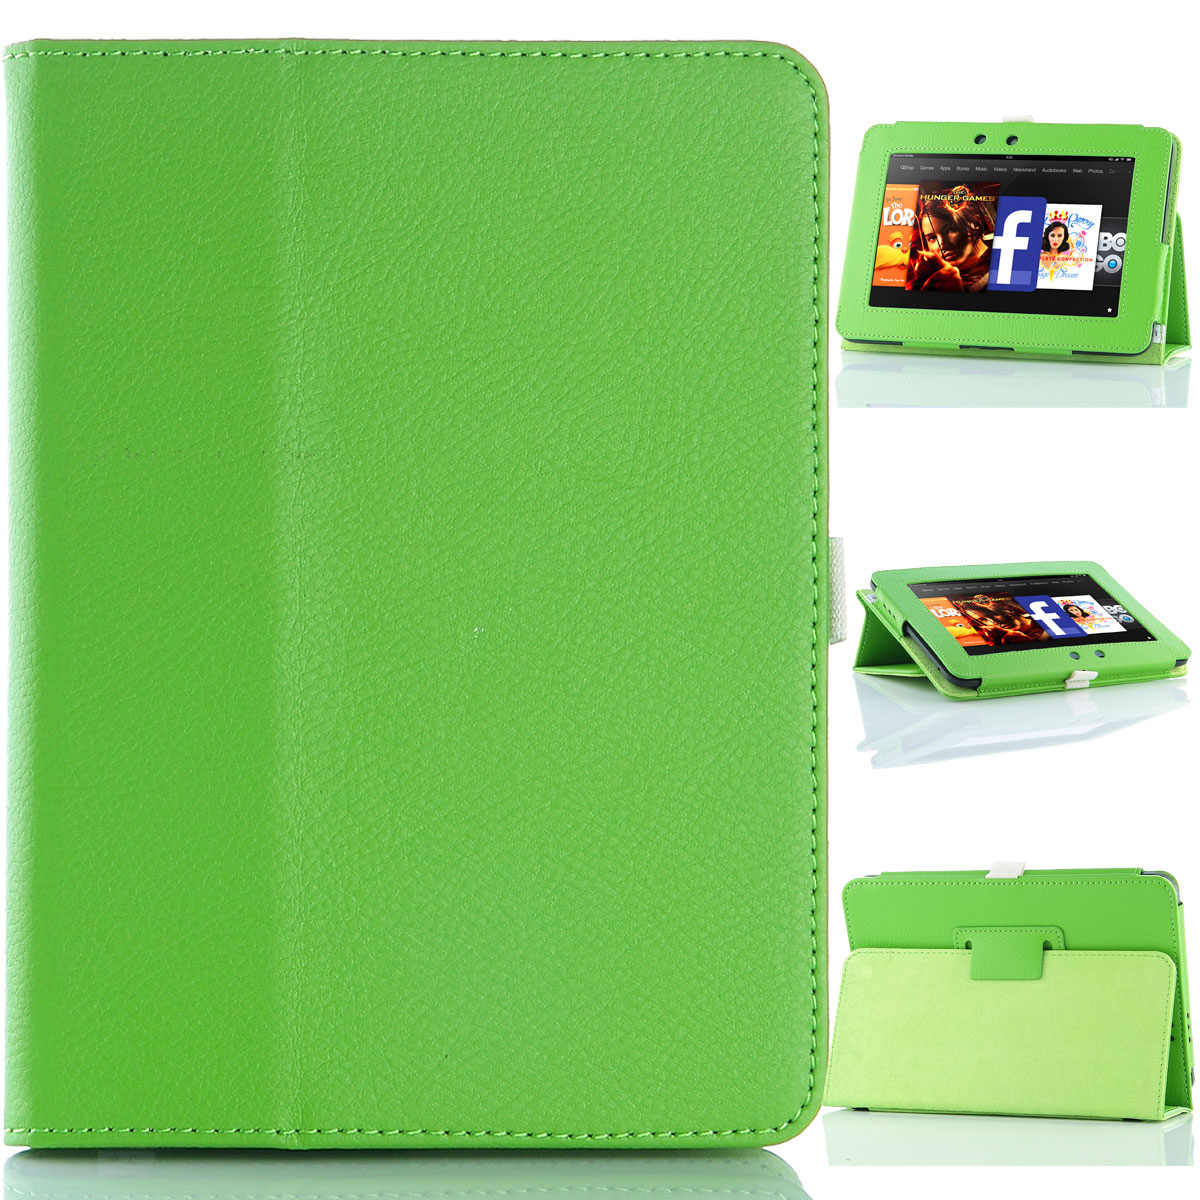 ULAK PU Leather Folio Stand Case Cover for Amazon Kindle Fire HD 7 Inch - 2012 Released